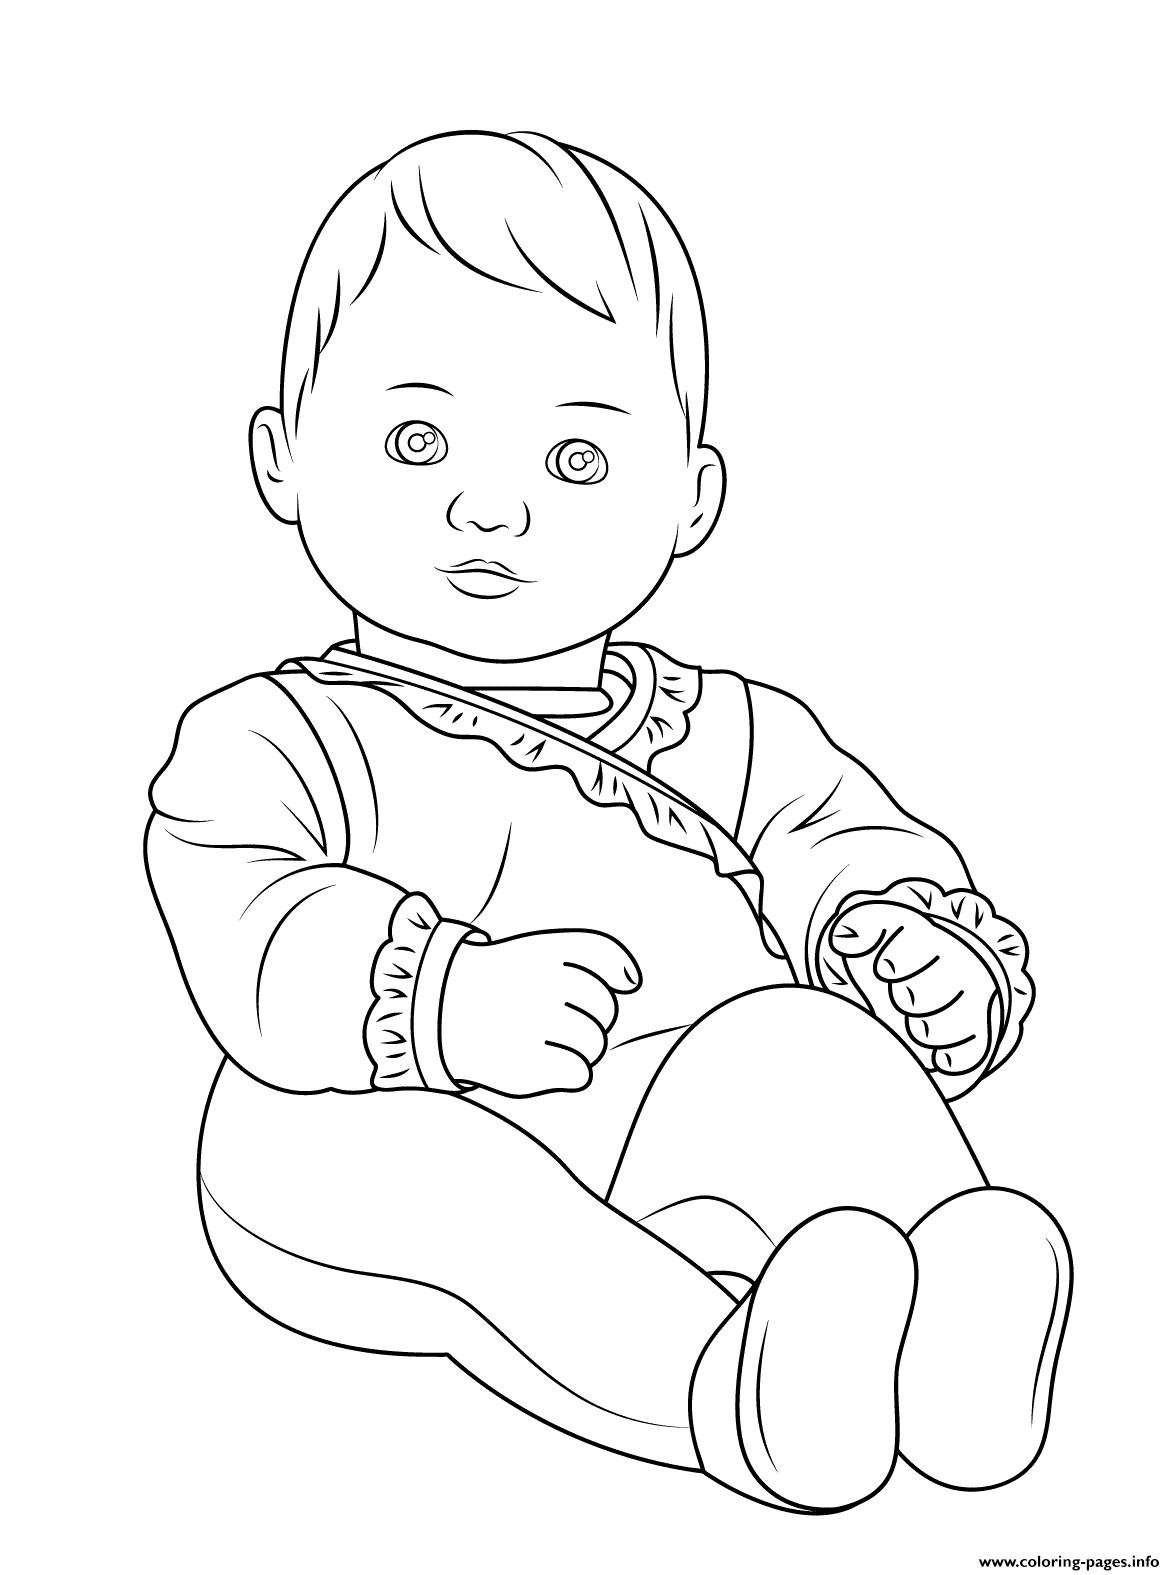 Baby Girl Coloring Pages - GetColoringPages.com | 1575x1175